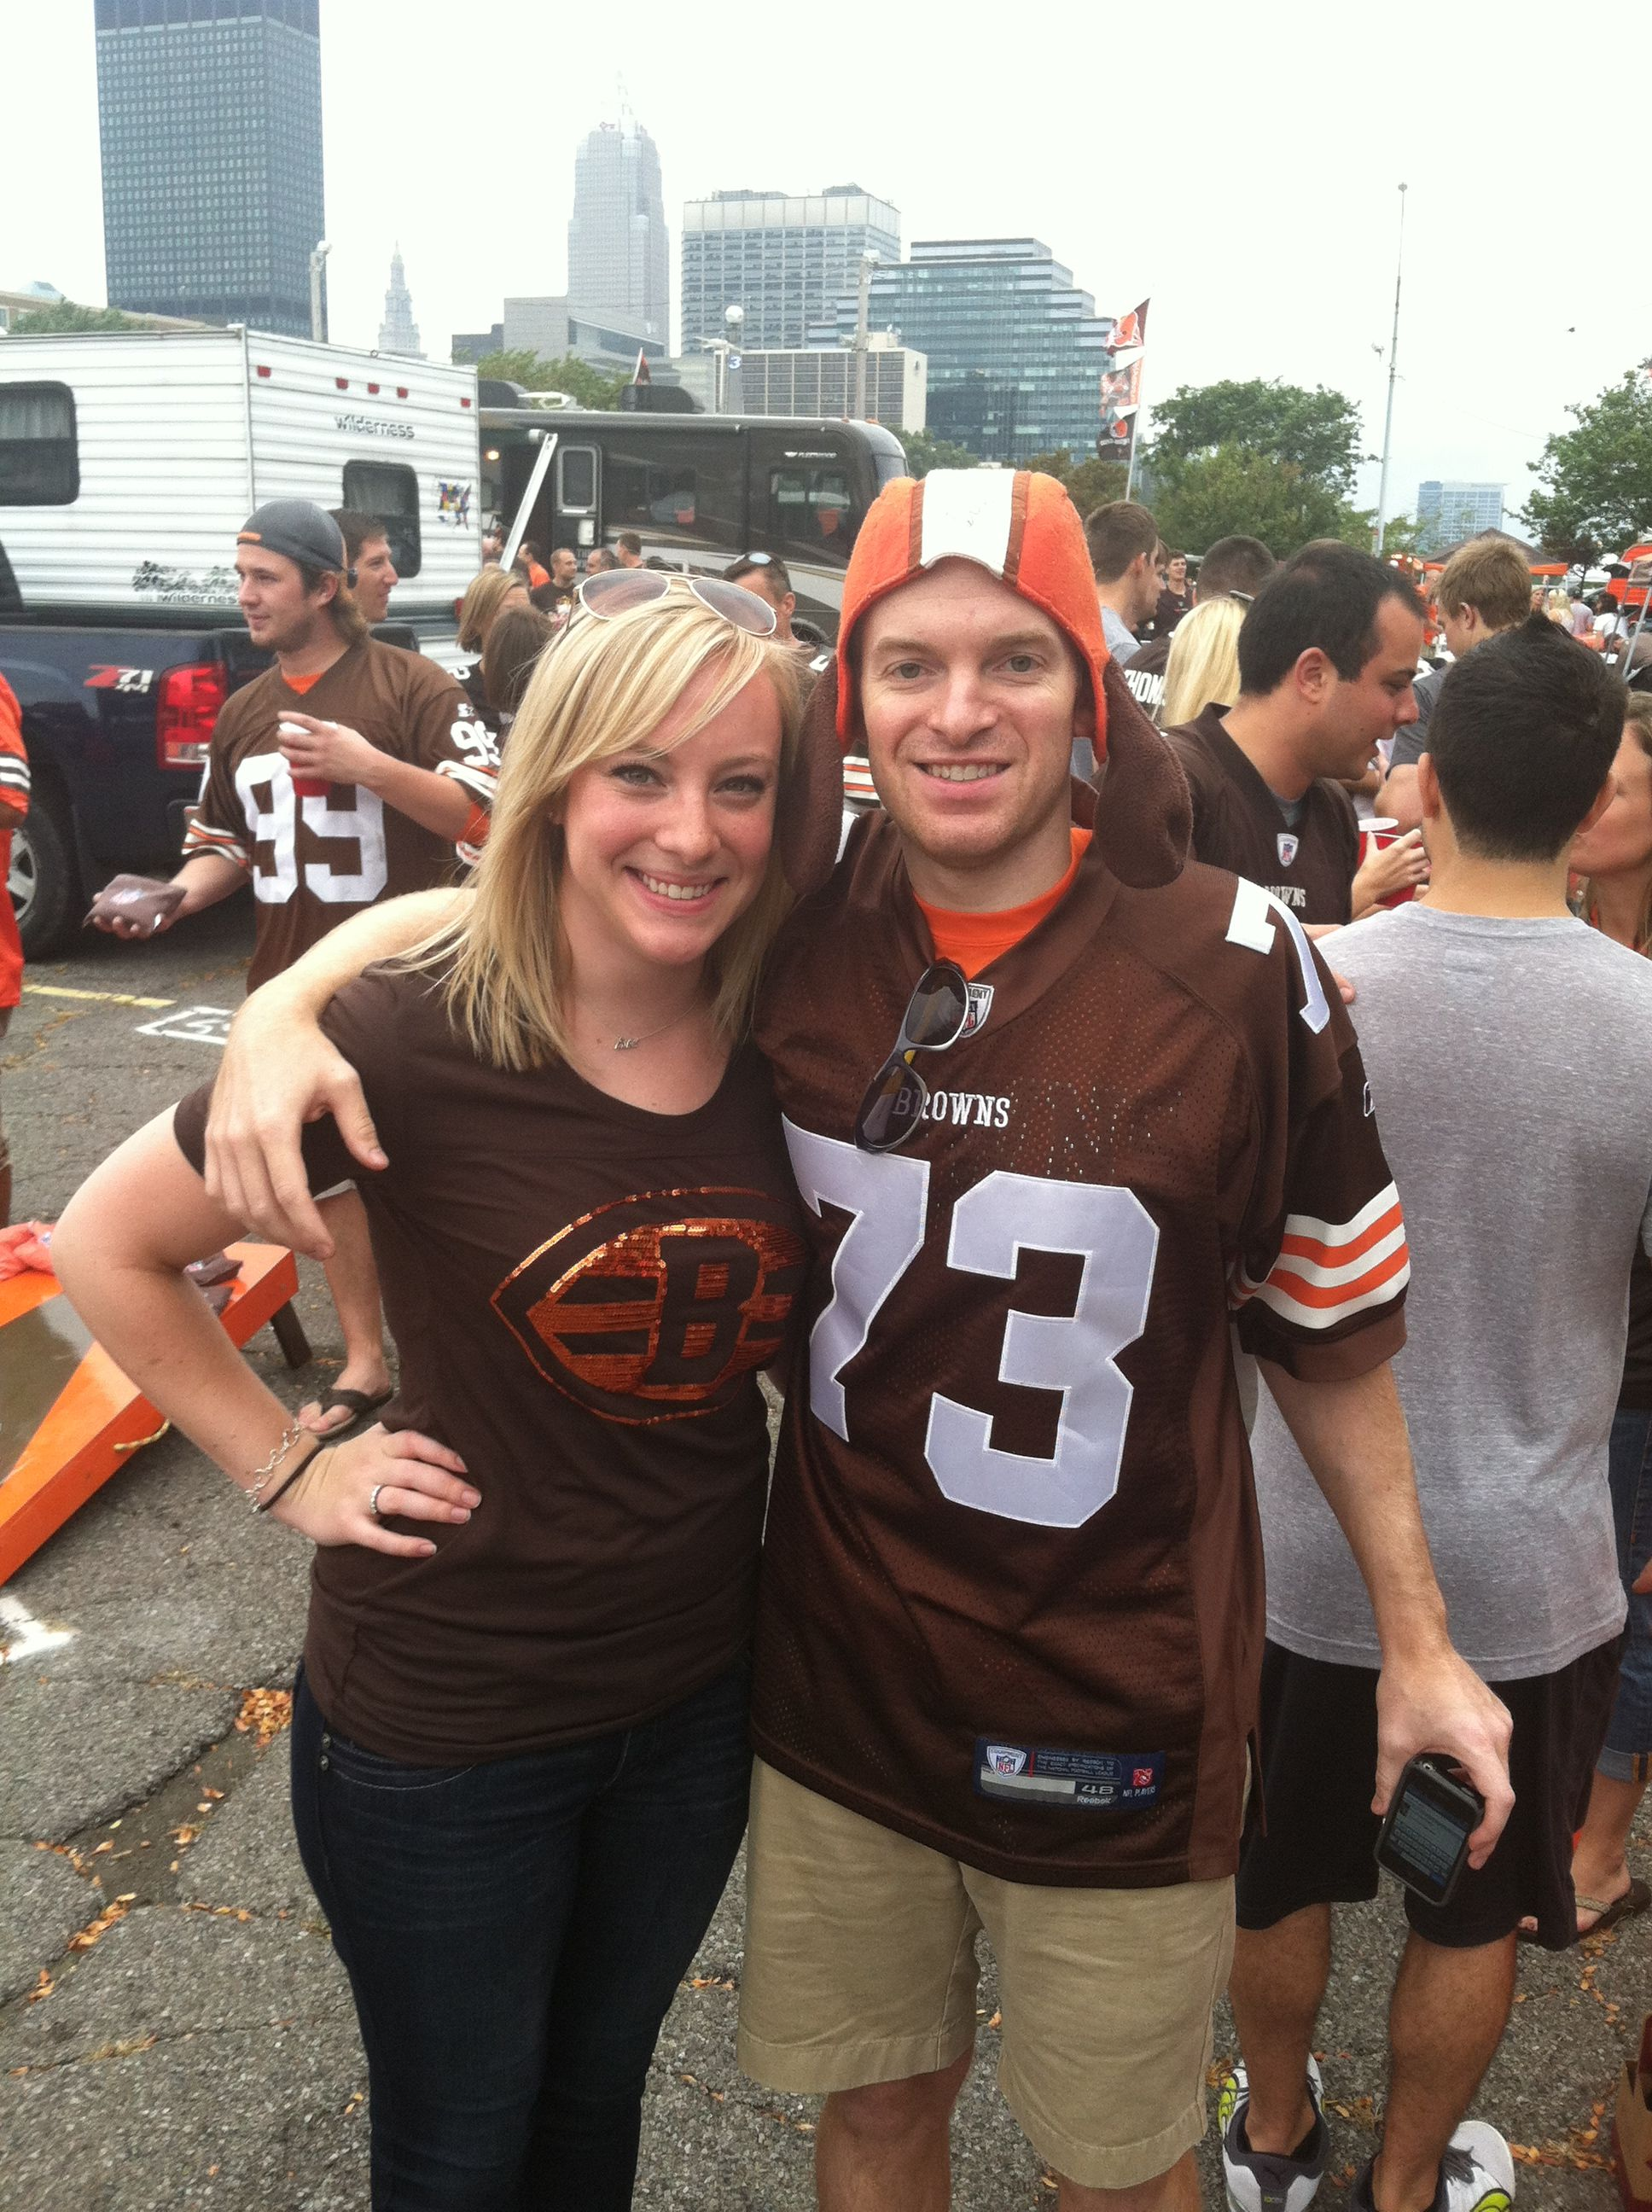 Two Super Fans Tailgating At Browns Home Opener 2013 Browns Fans Football Conference National Football League